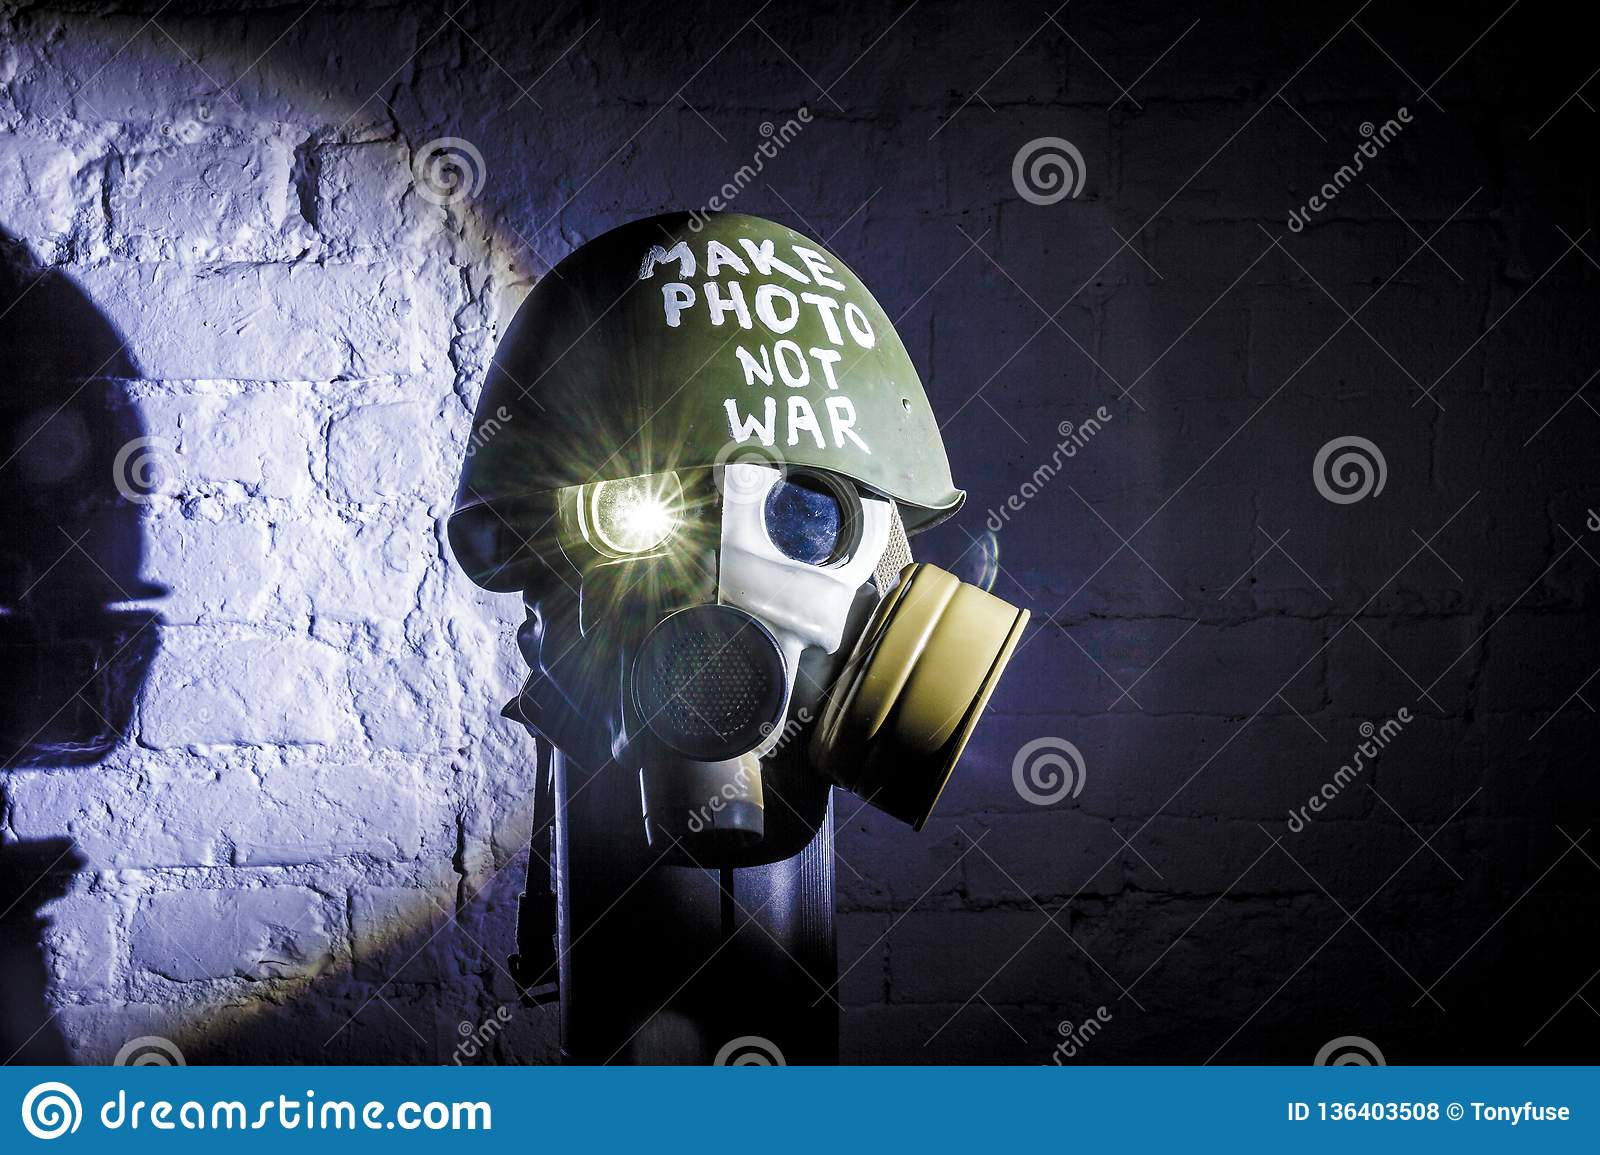 Art picture of a military gas mask